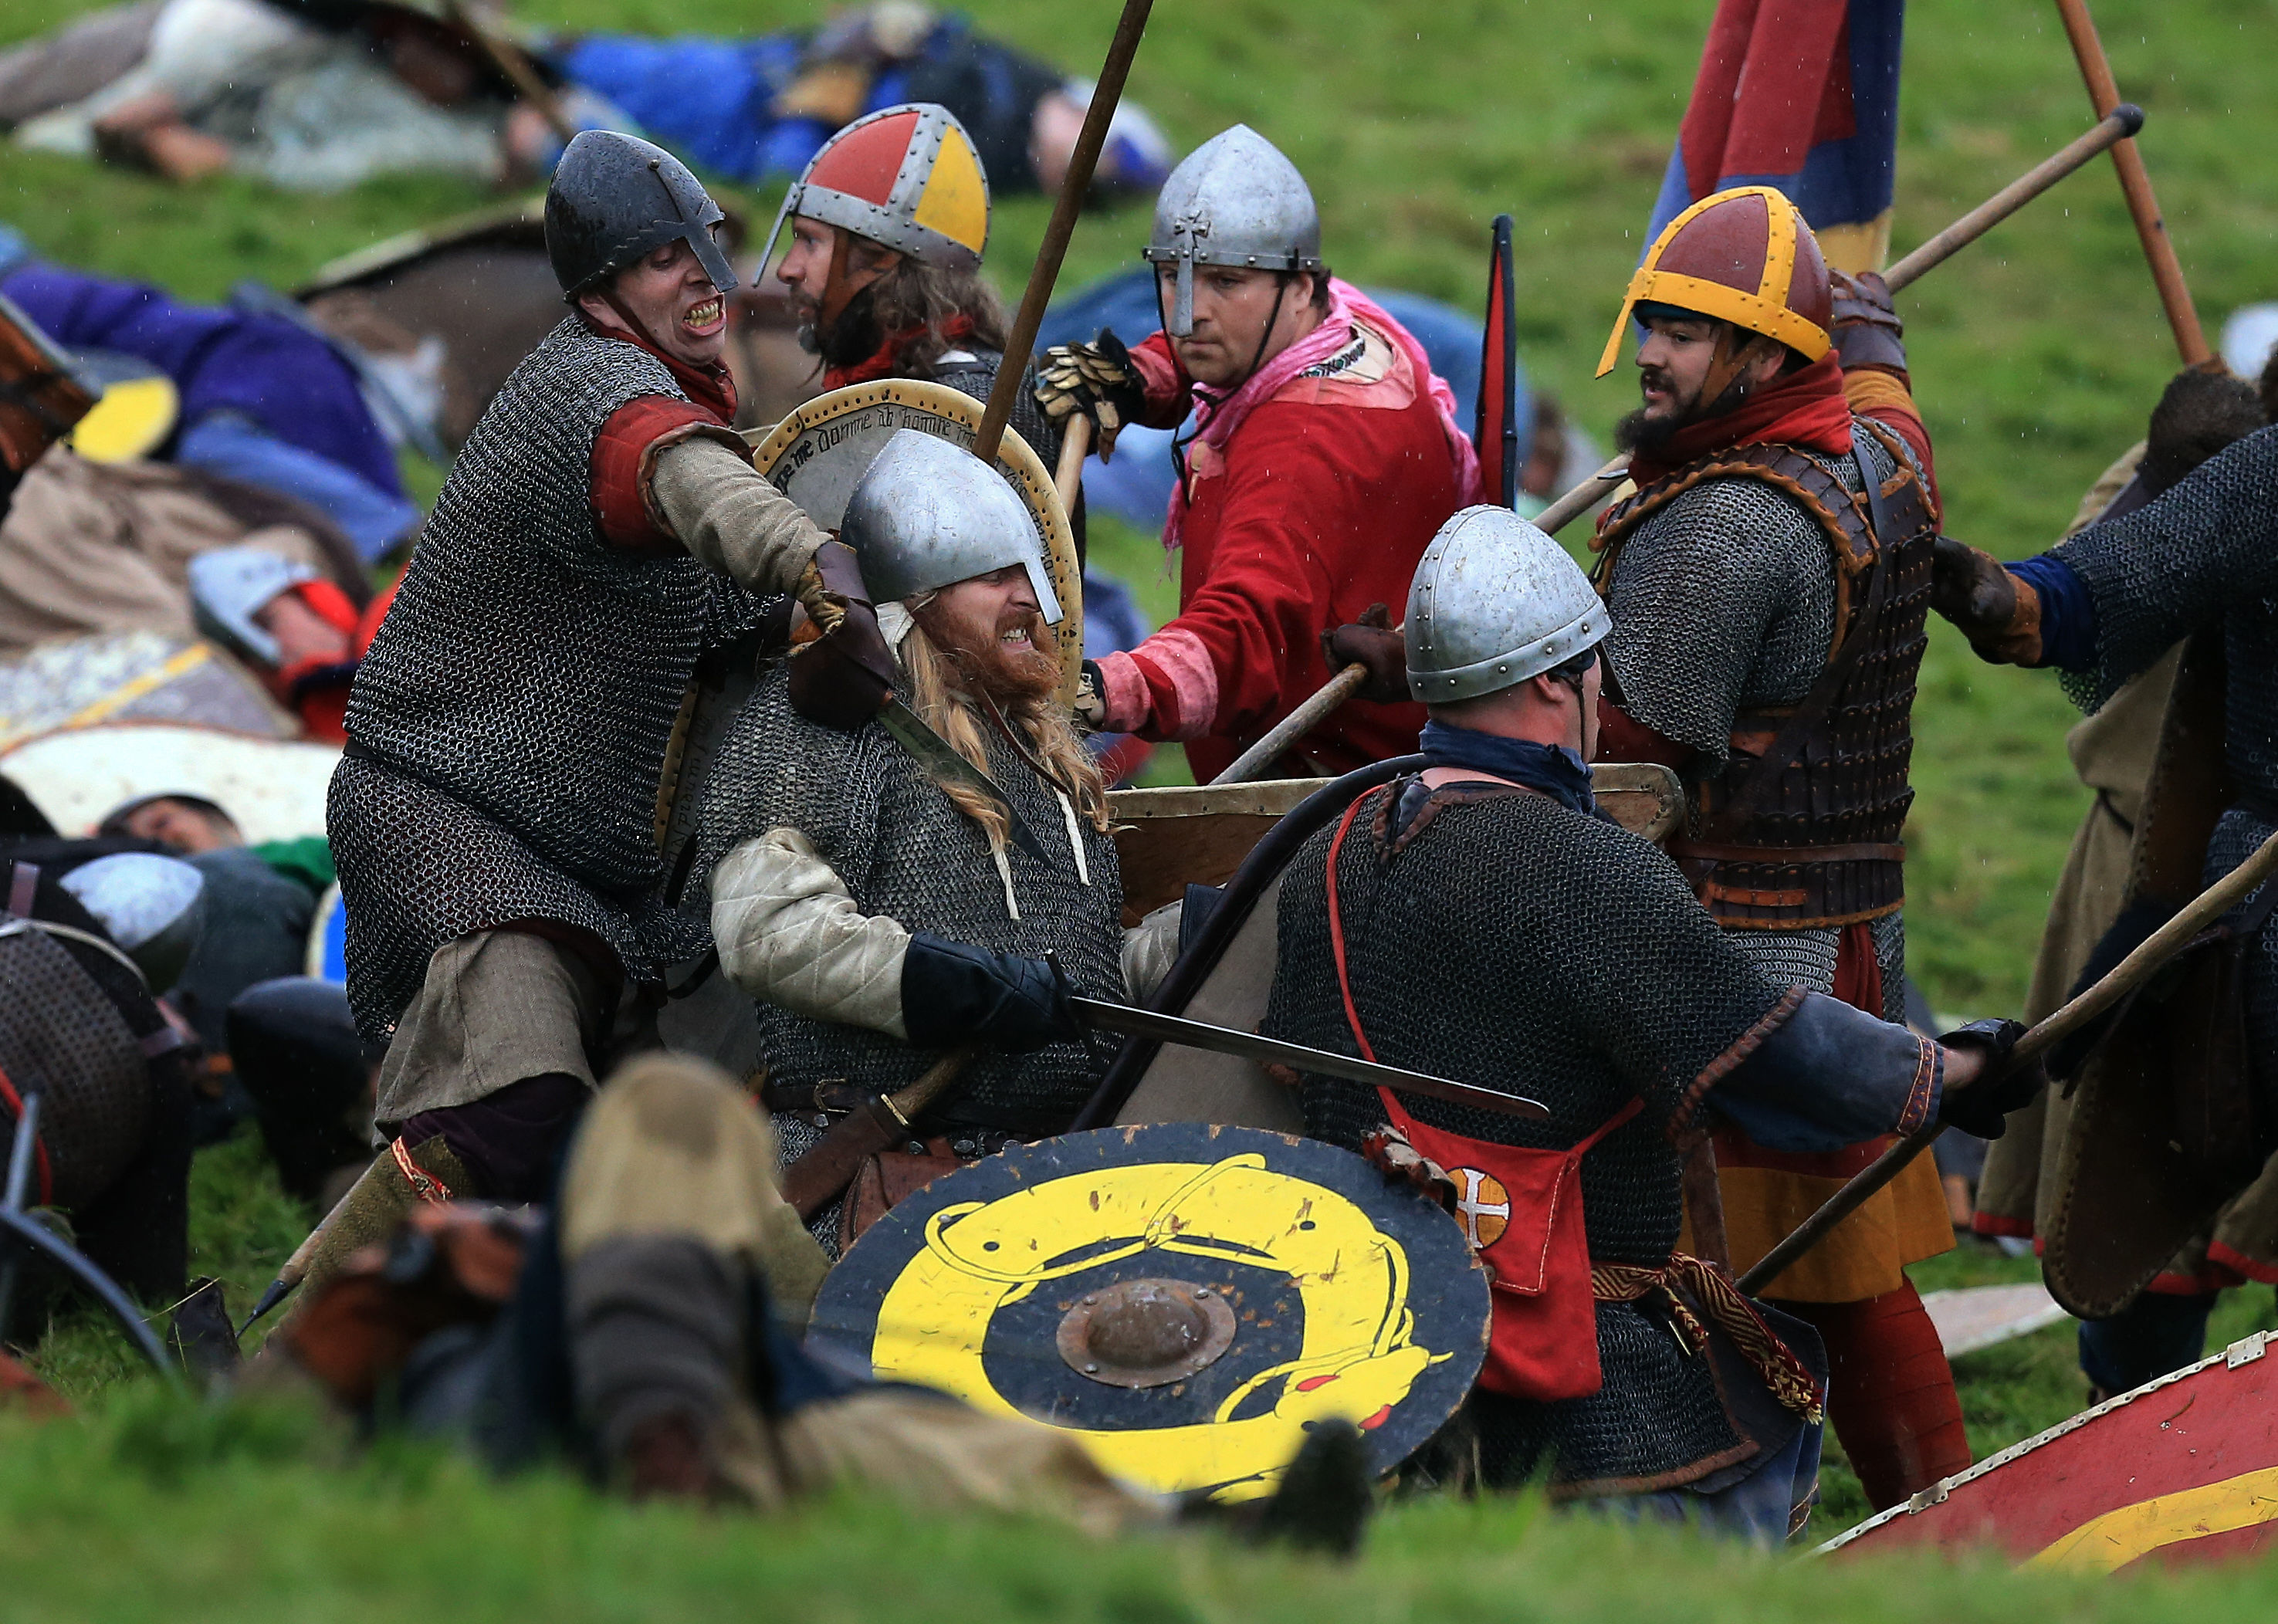 Battle of Hastings re-enactment